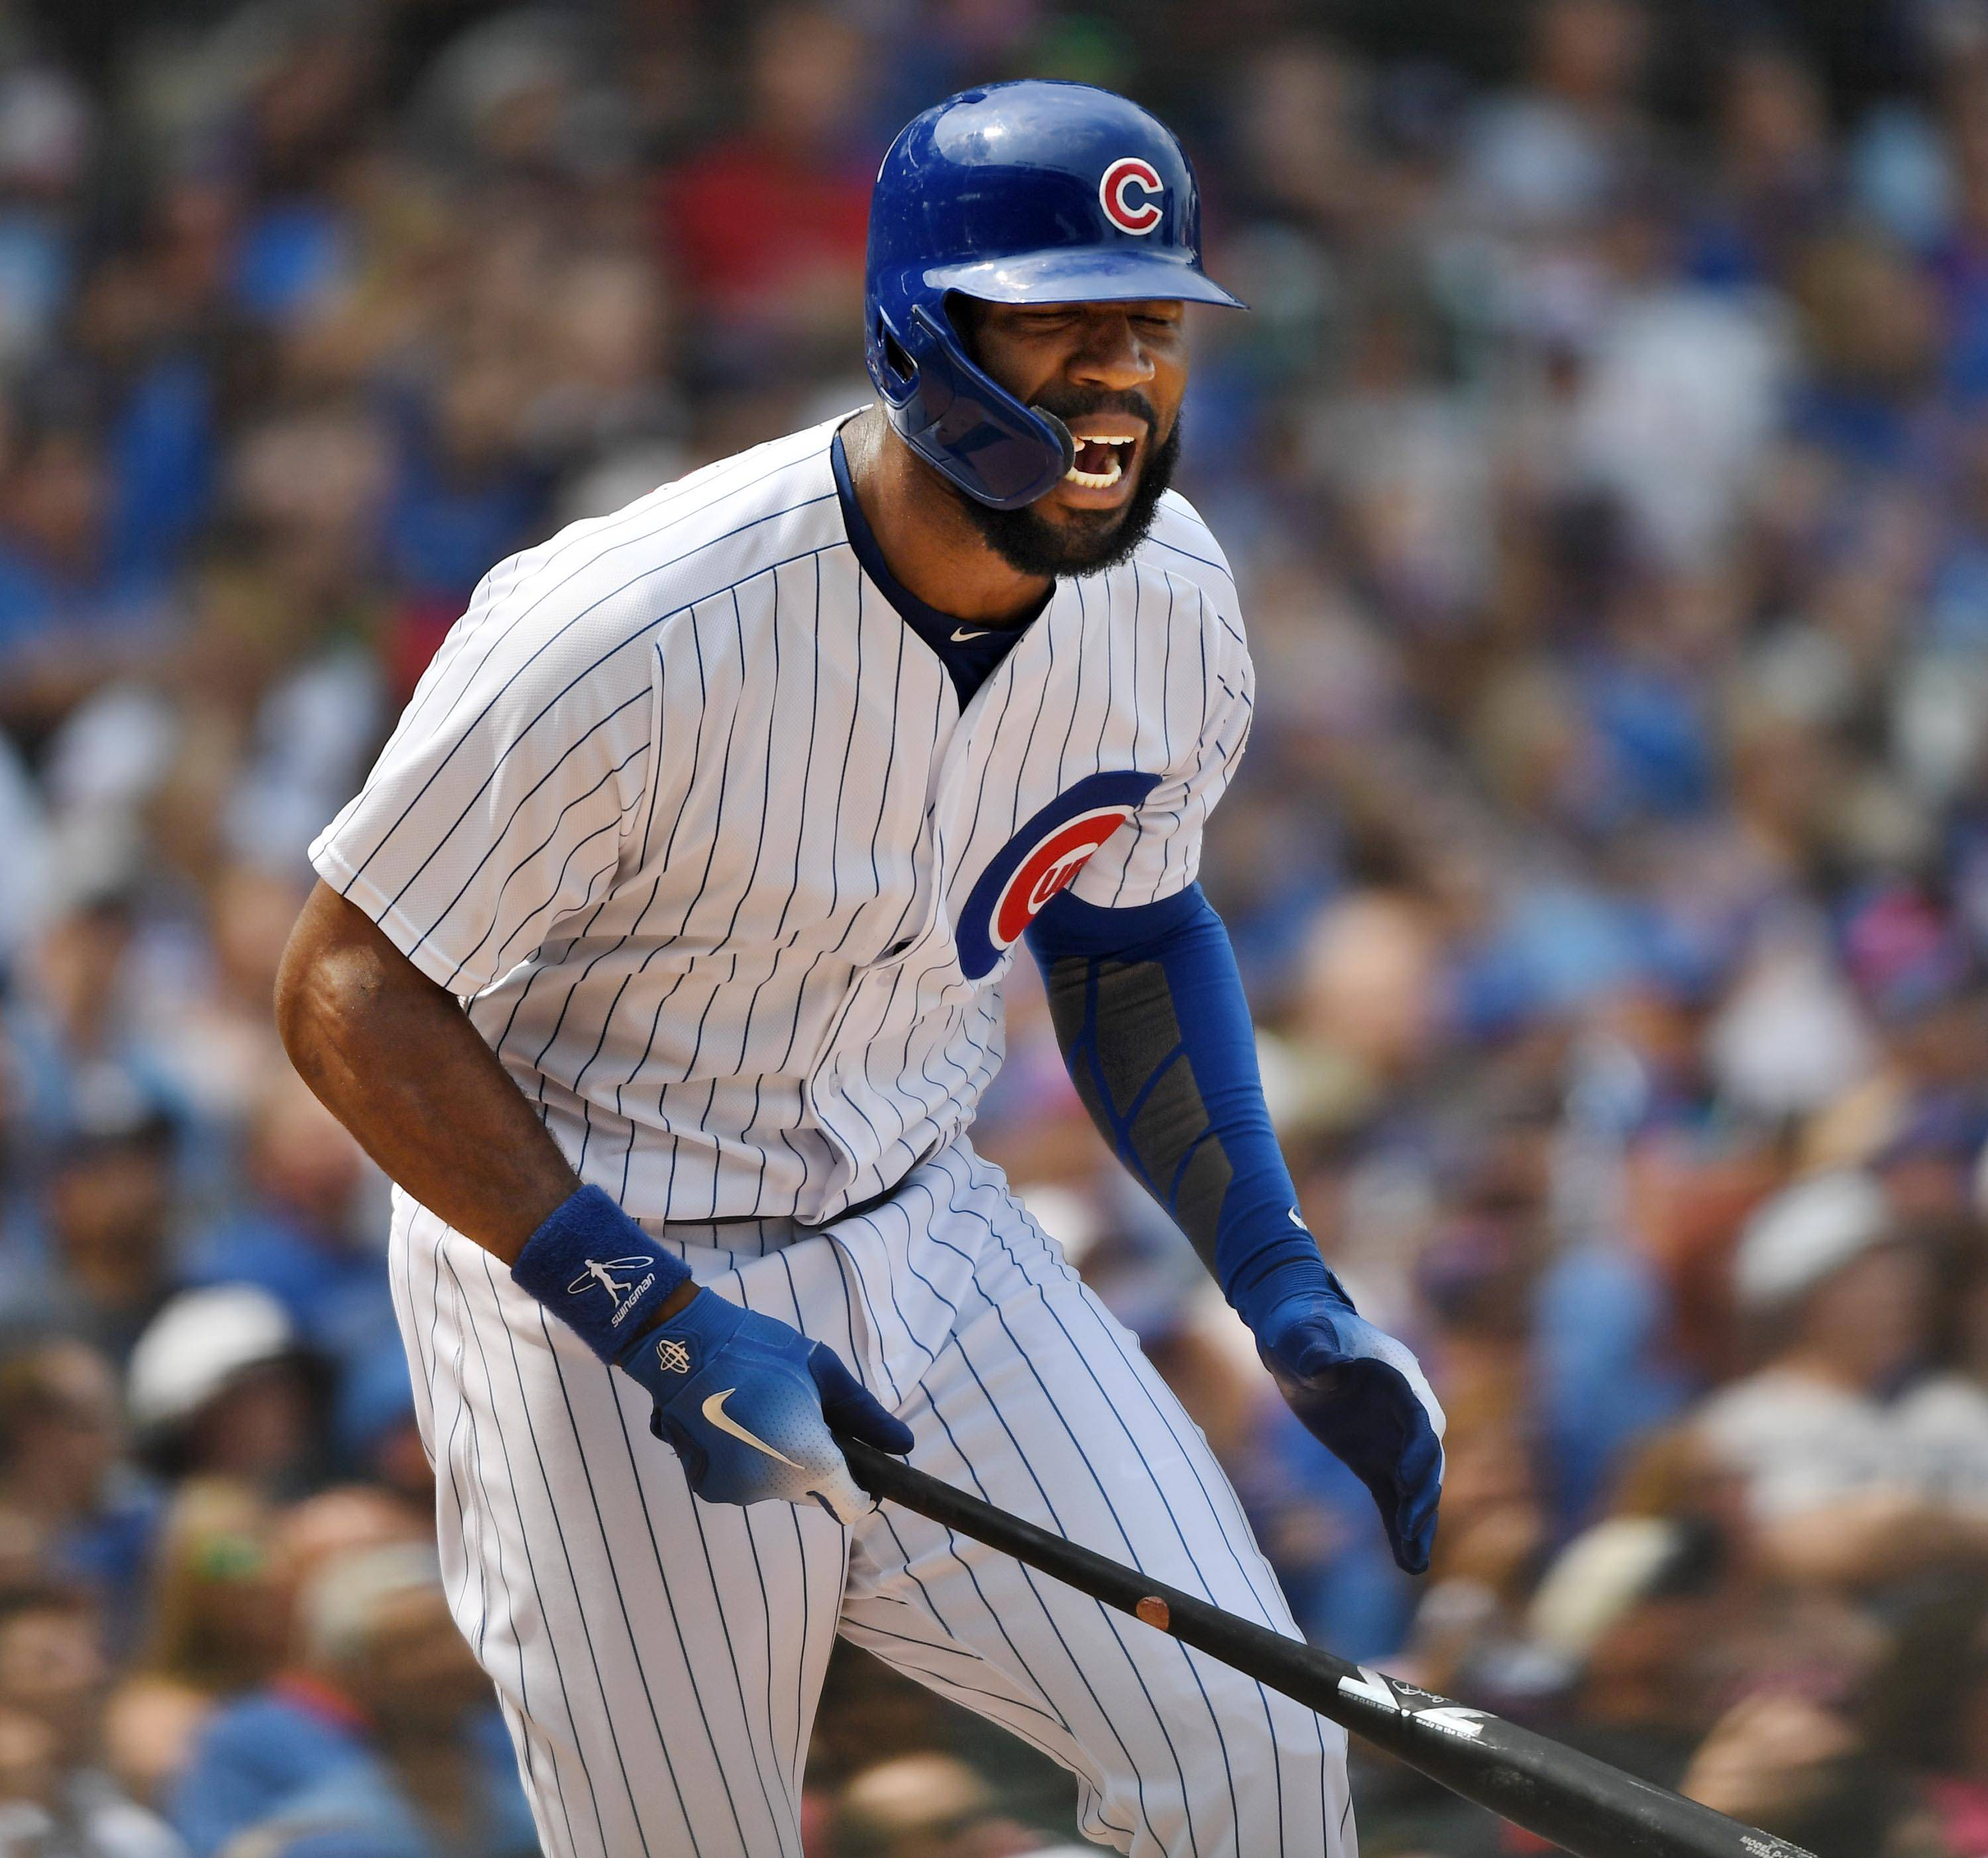 Chicago Cubs batter Jason Heyward yells after leading off the fourth inning with a fly out against Milwaukee Brewers starting pitcher Jhoulys Chacin Tuesday at Wrigley Field in Chicago.